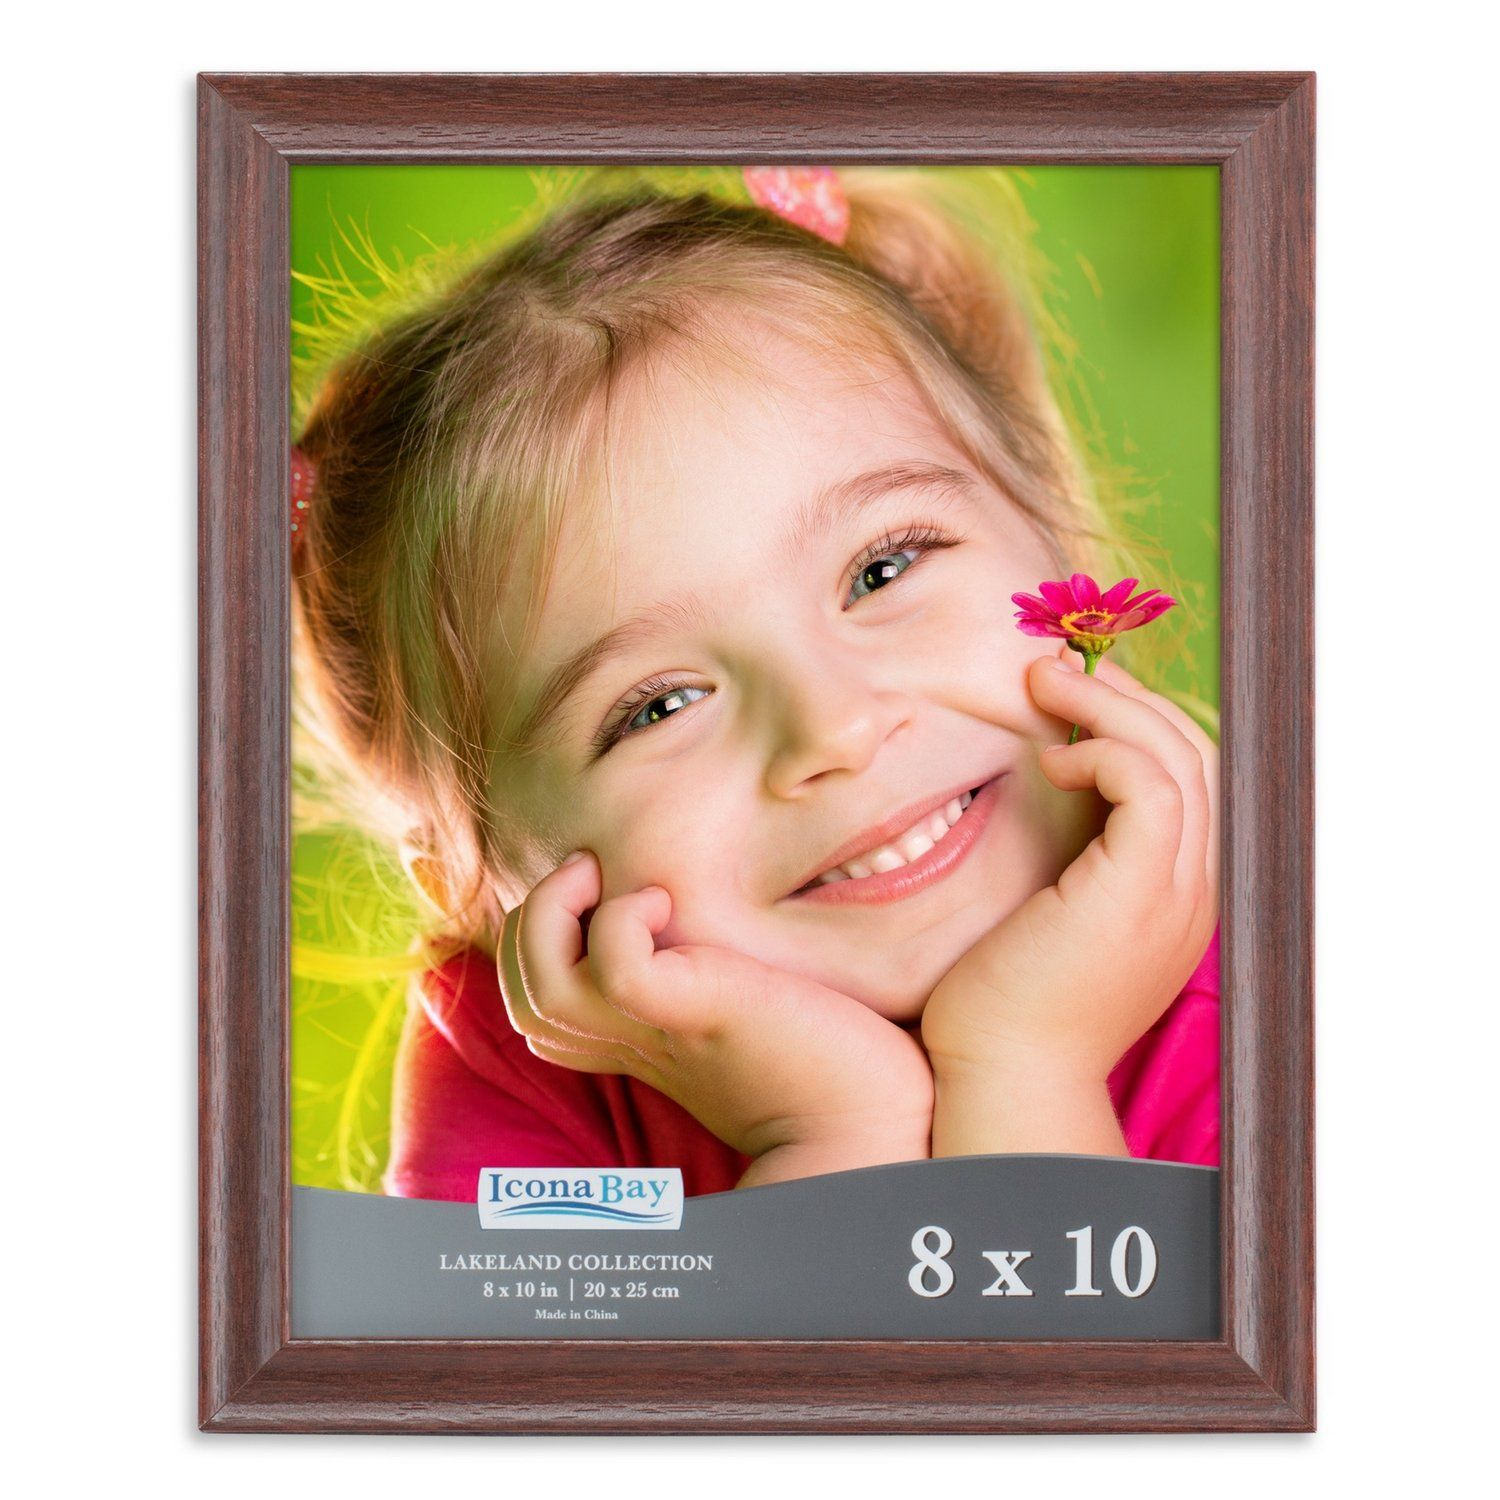 Icona Bay 8 By 10 Picture Frame 8x10 6 Pack Teak Wood Finish Wall Mount Hangers And Table Top Easel La Frame Tabletop Picture Frames Wood Photo Frame